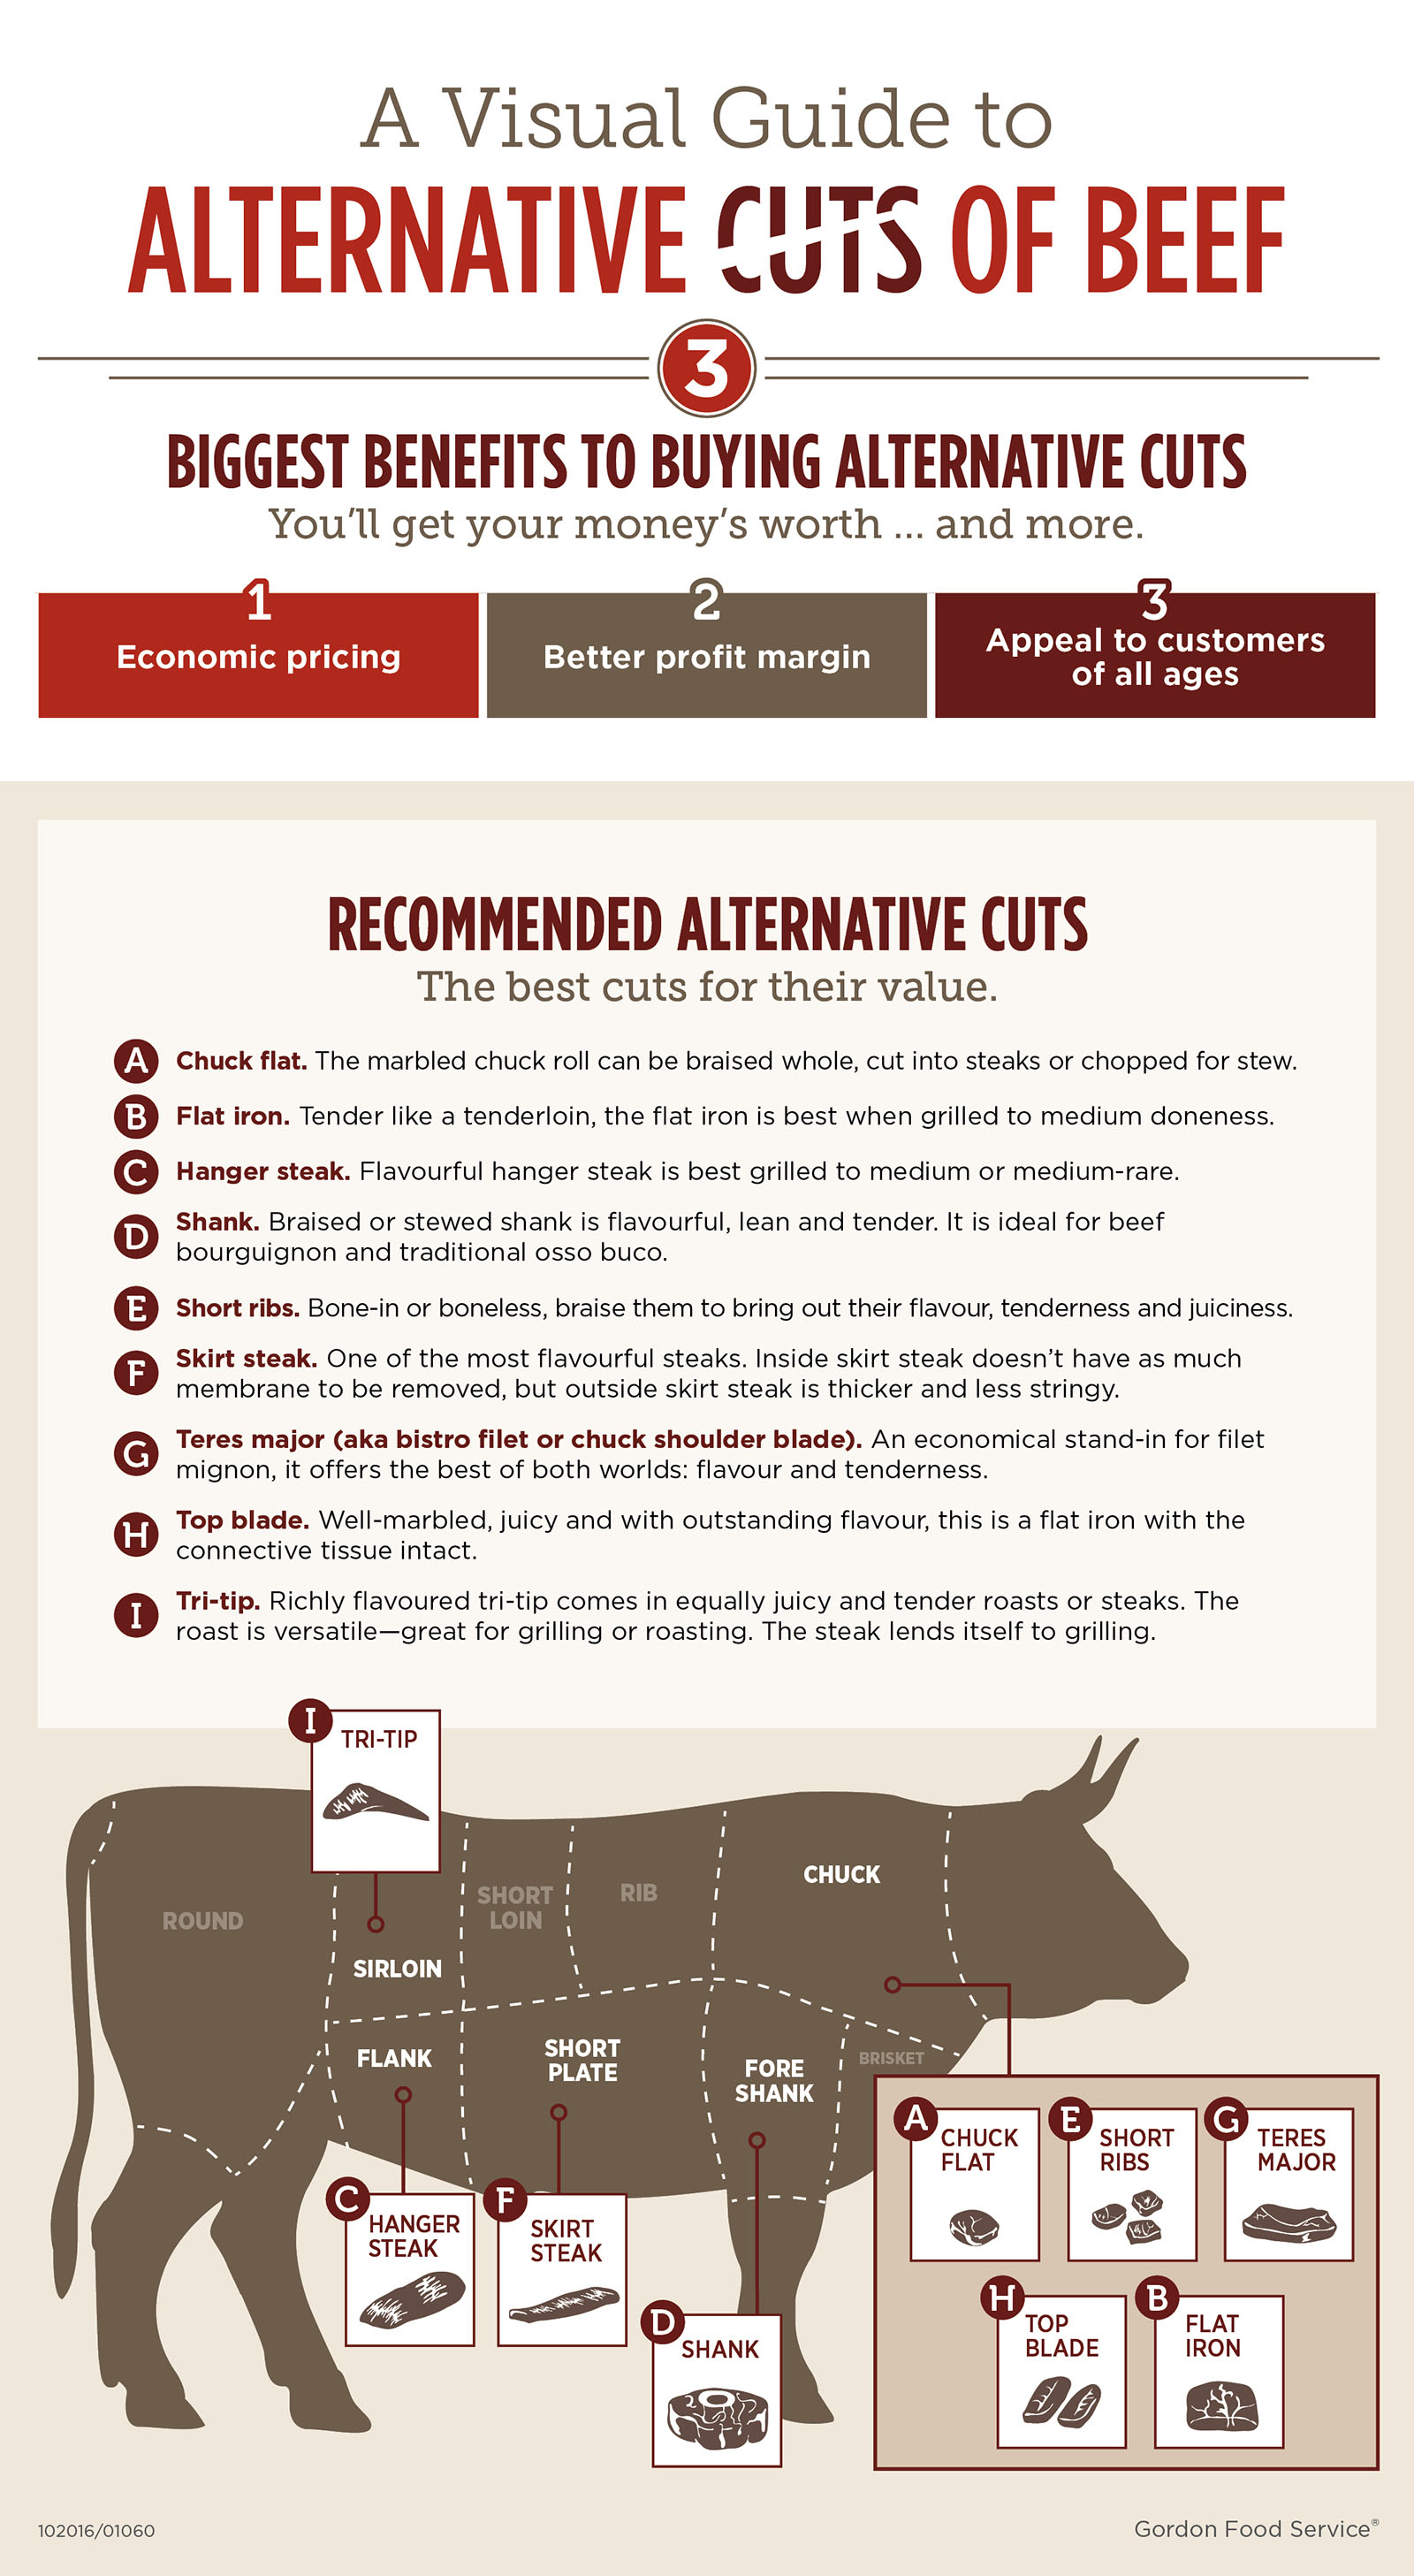 A visual guide to alternative cuts of beef.